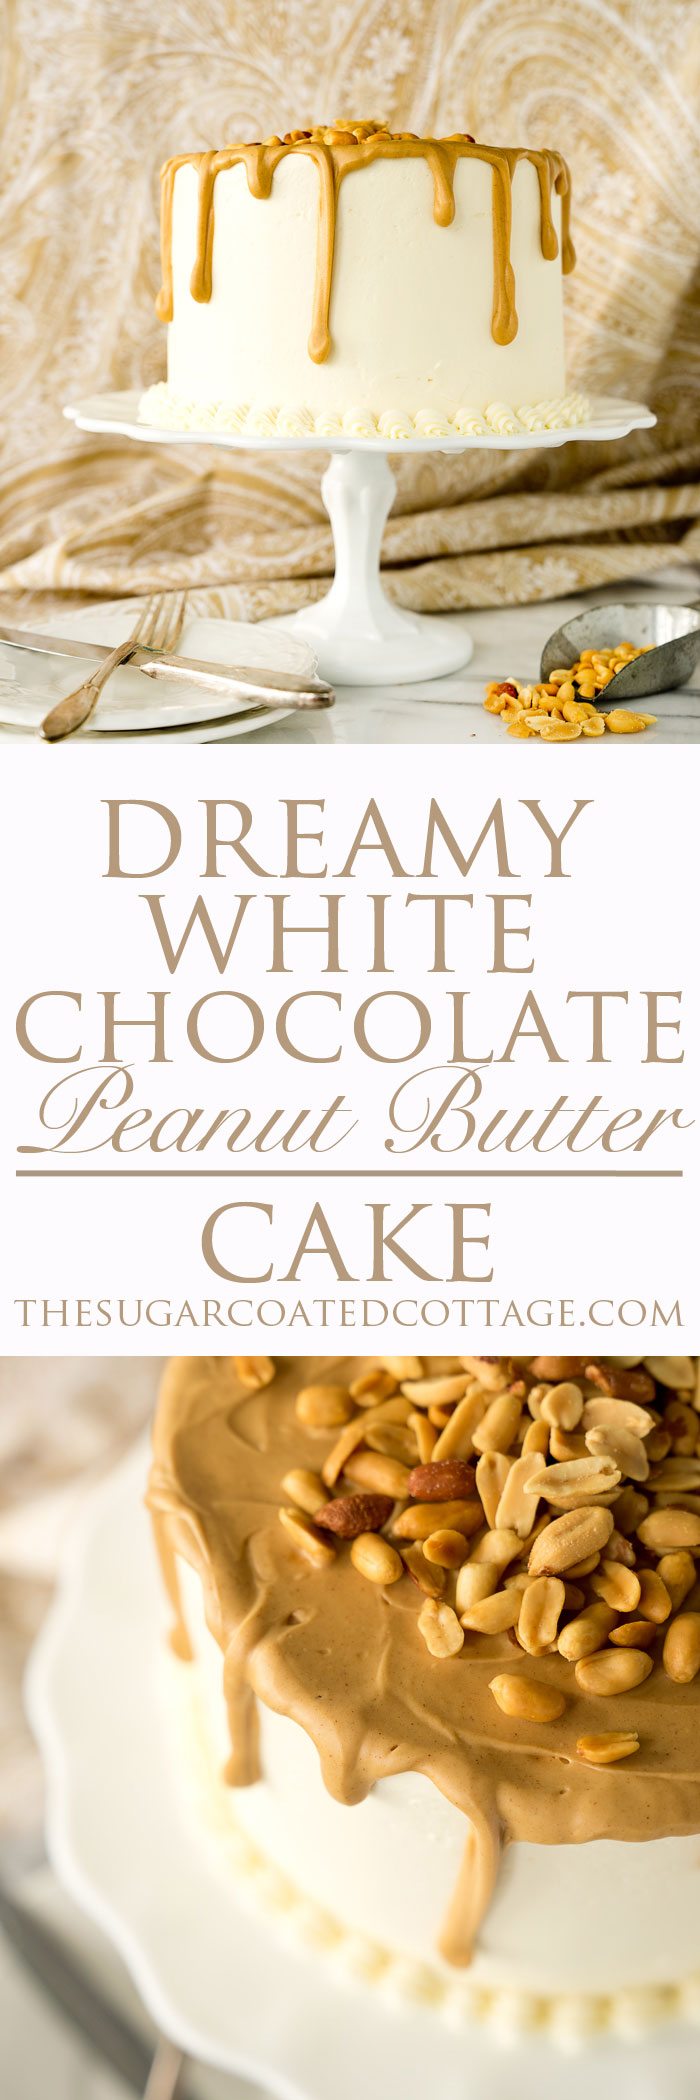 Www Thesugarcoatedcottage Com Dreamy White Chocolate Panut Butter Cake